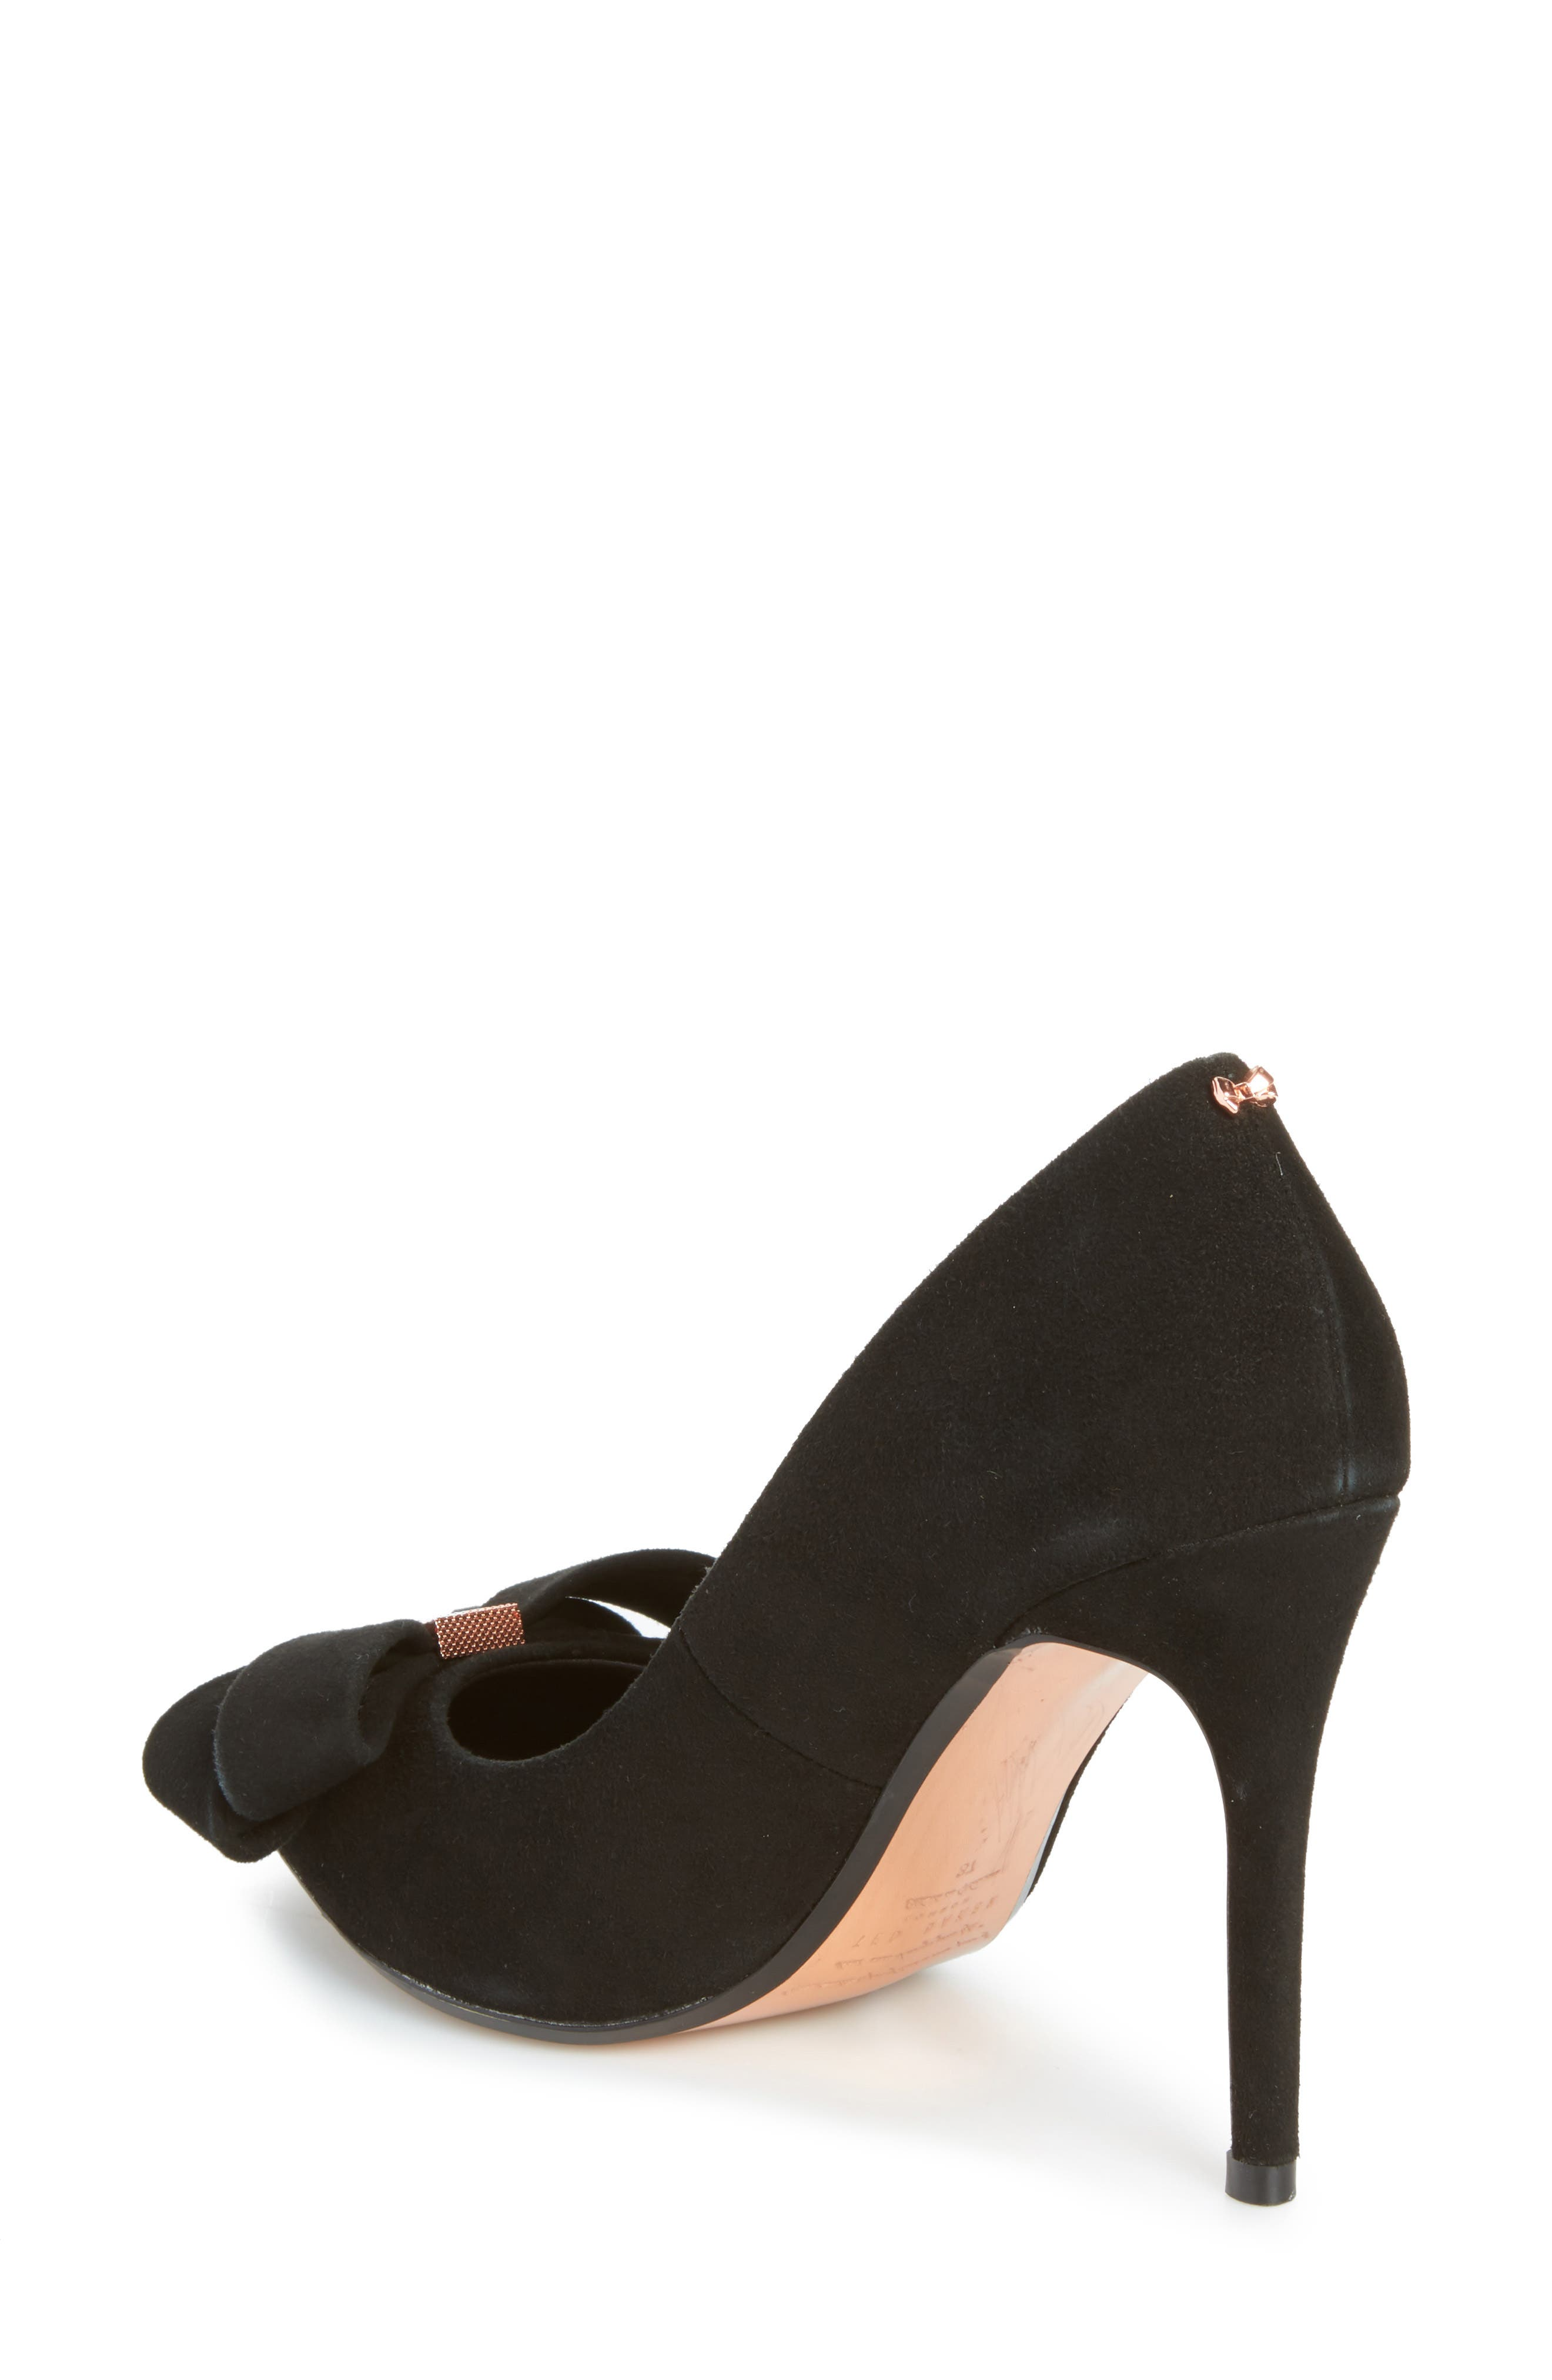 Skalett Pump,                             Alternate thumbnail 2, color,                             Black Suede